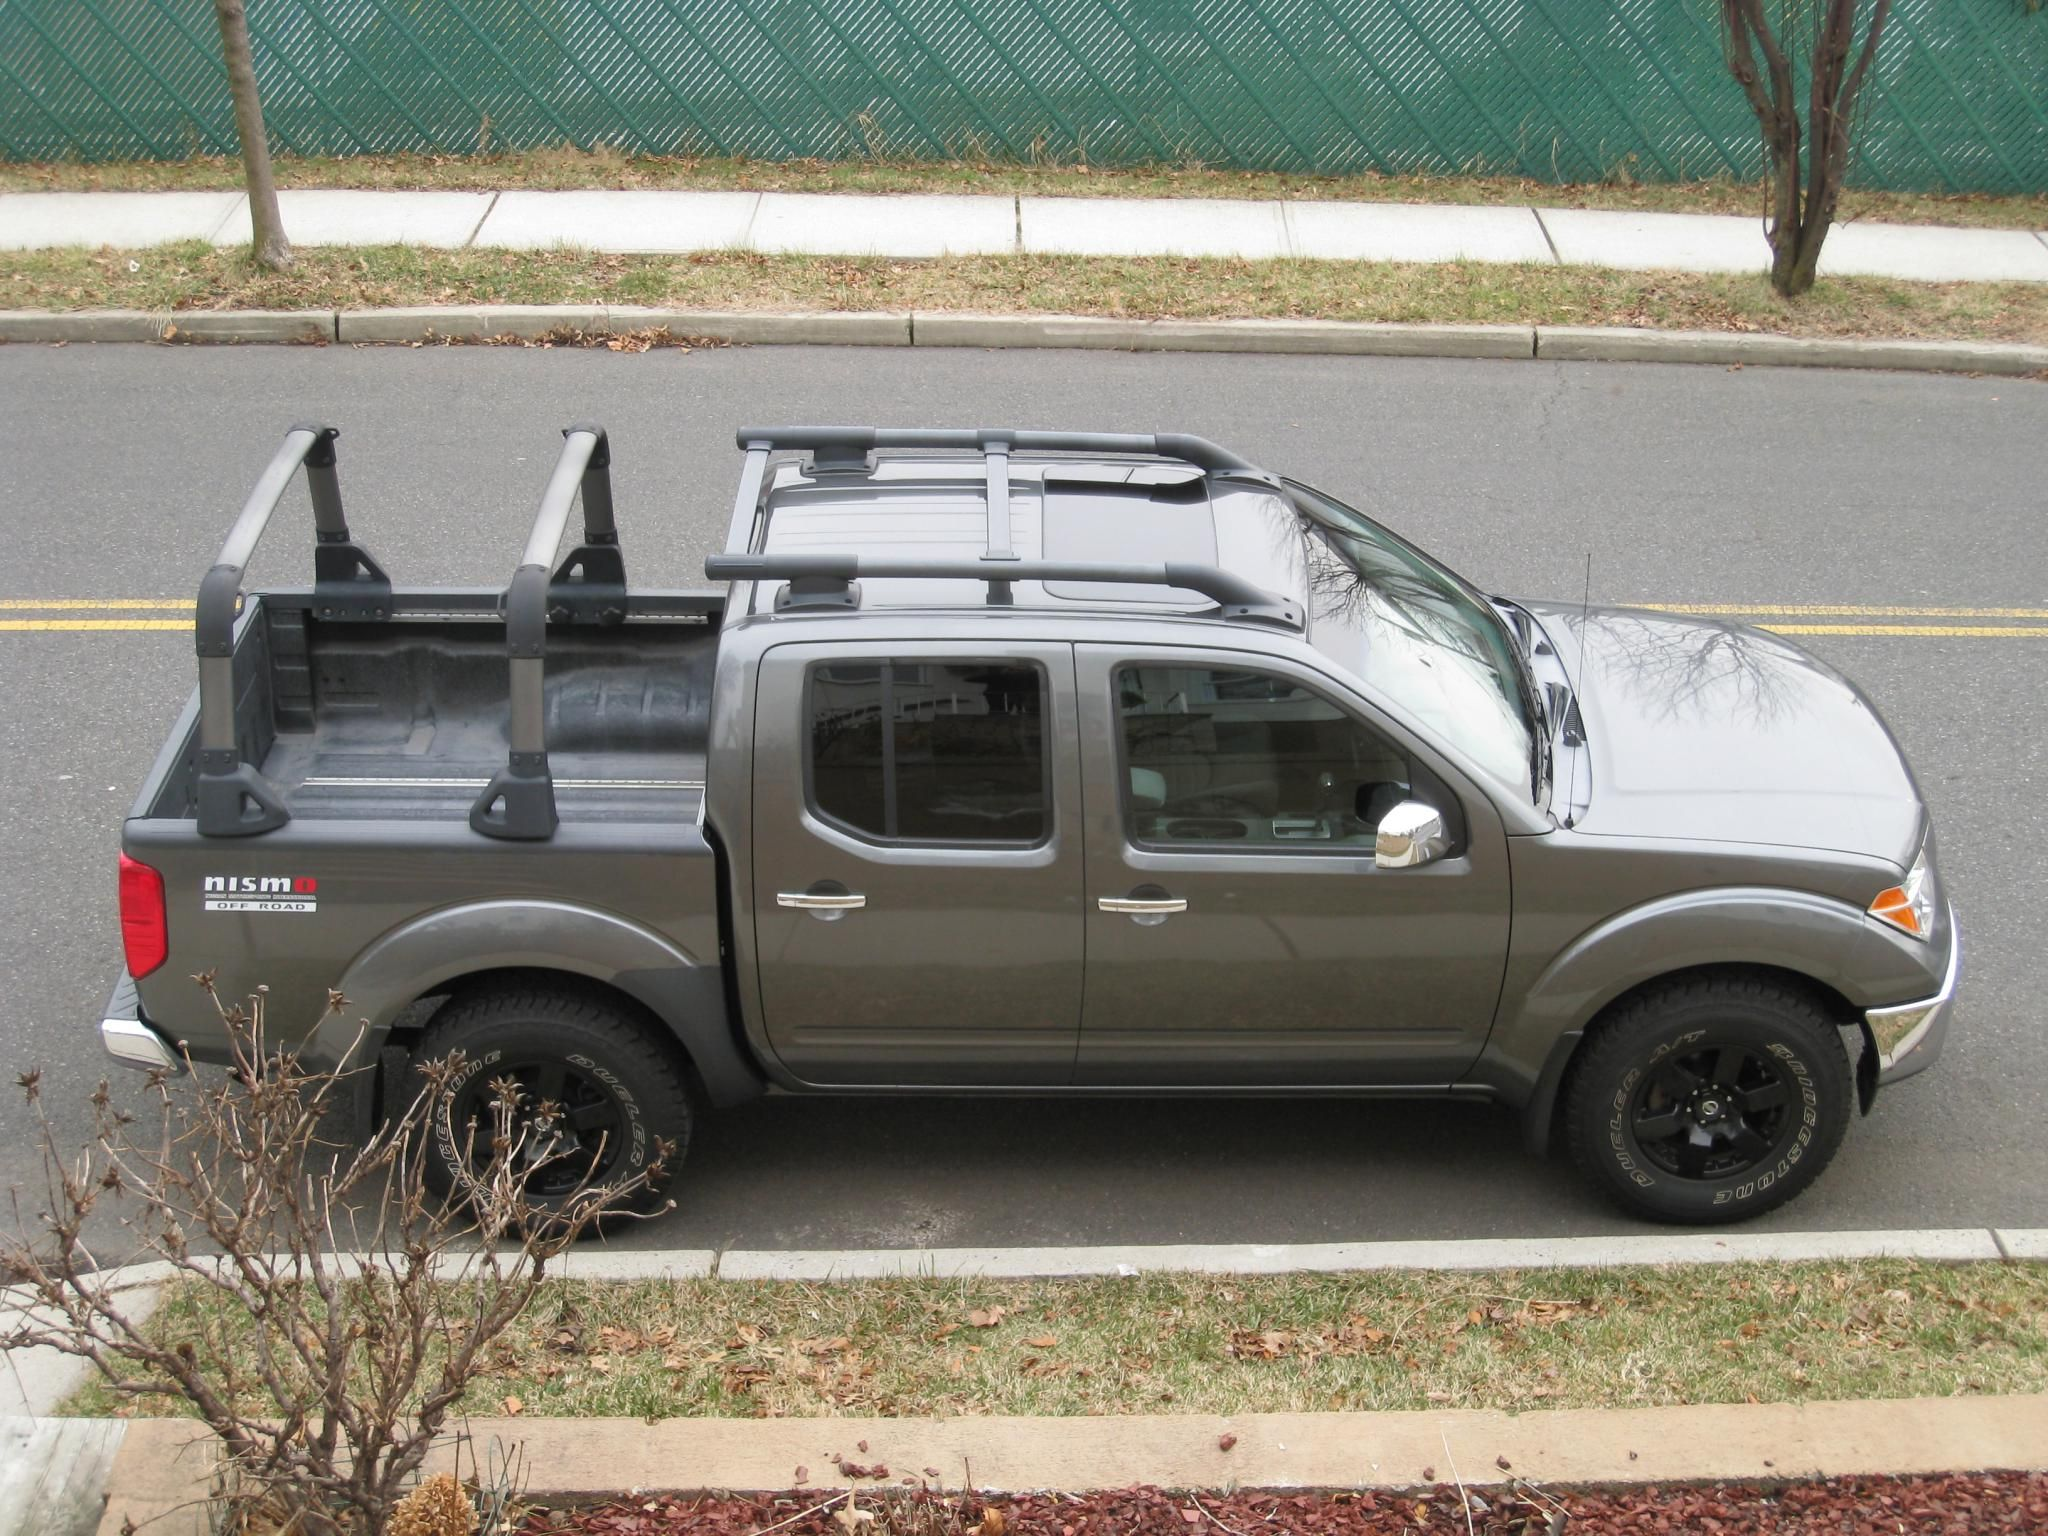 nissan frontier forum looking for a bed rack. Black Bedroom Furniture Sets. Home Design Ideas